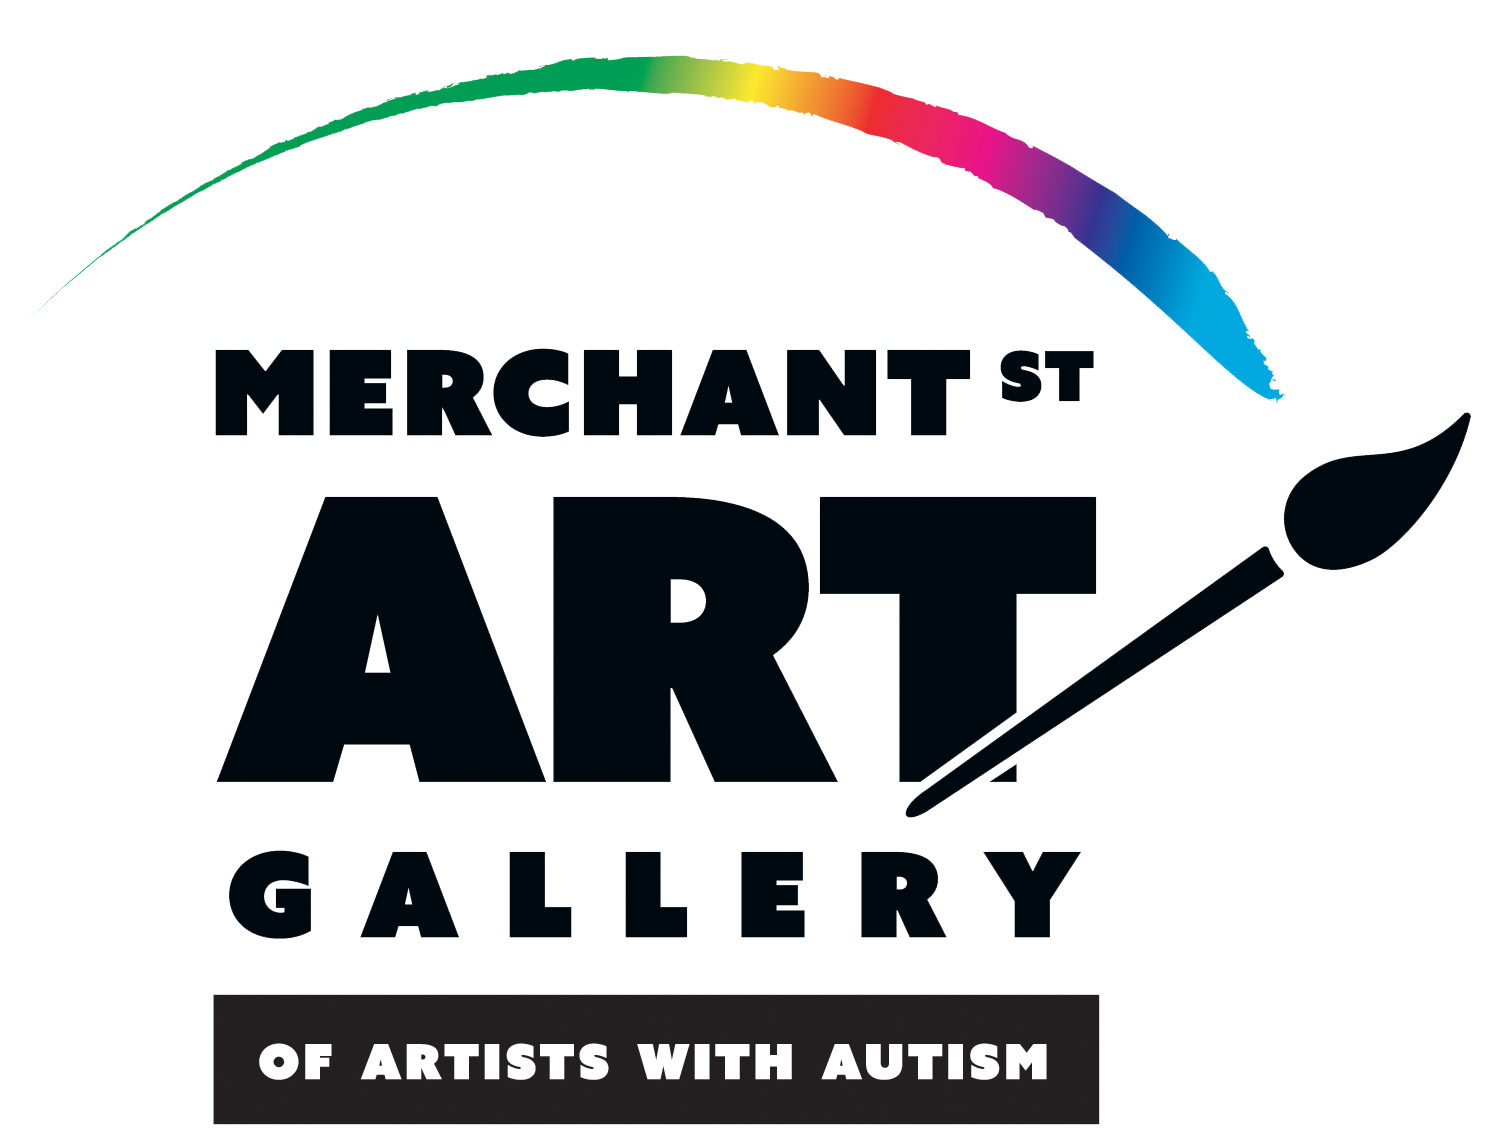 Merchant Street Art Gallery of Artists with Autism